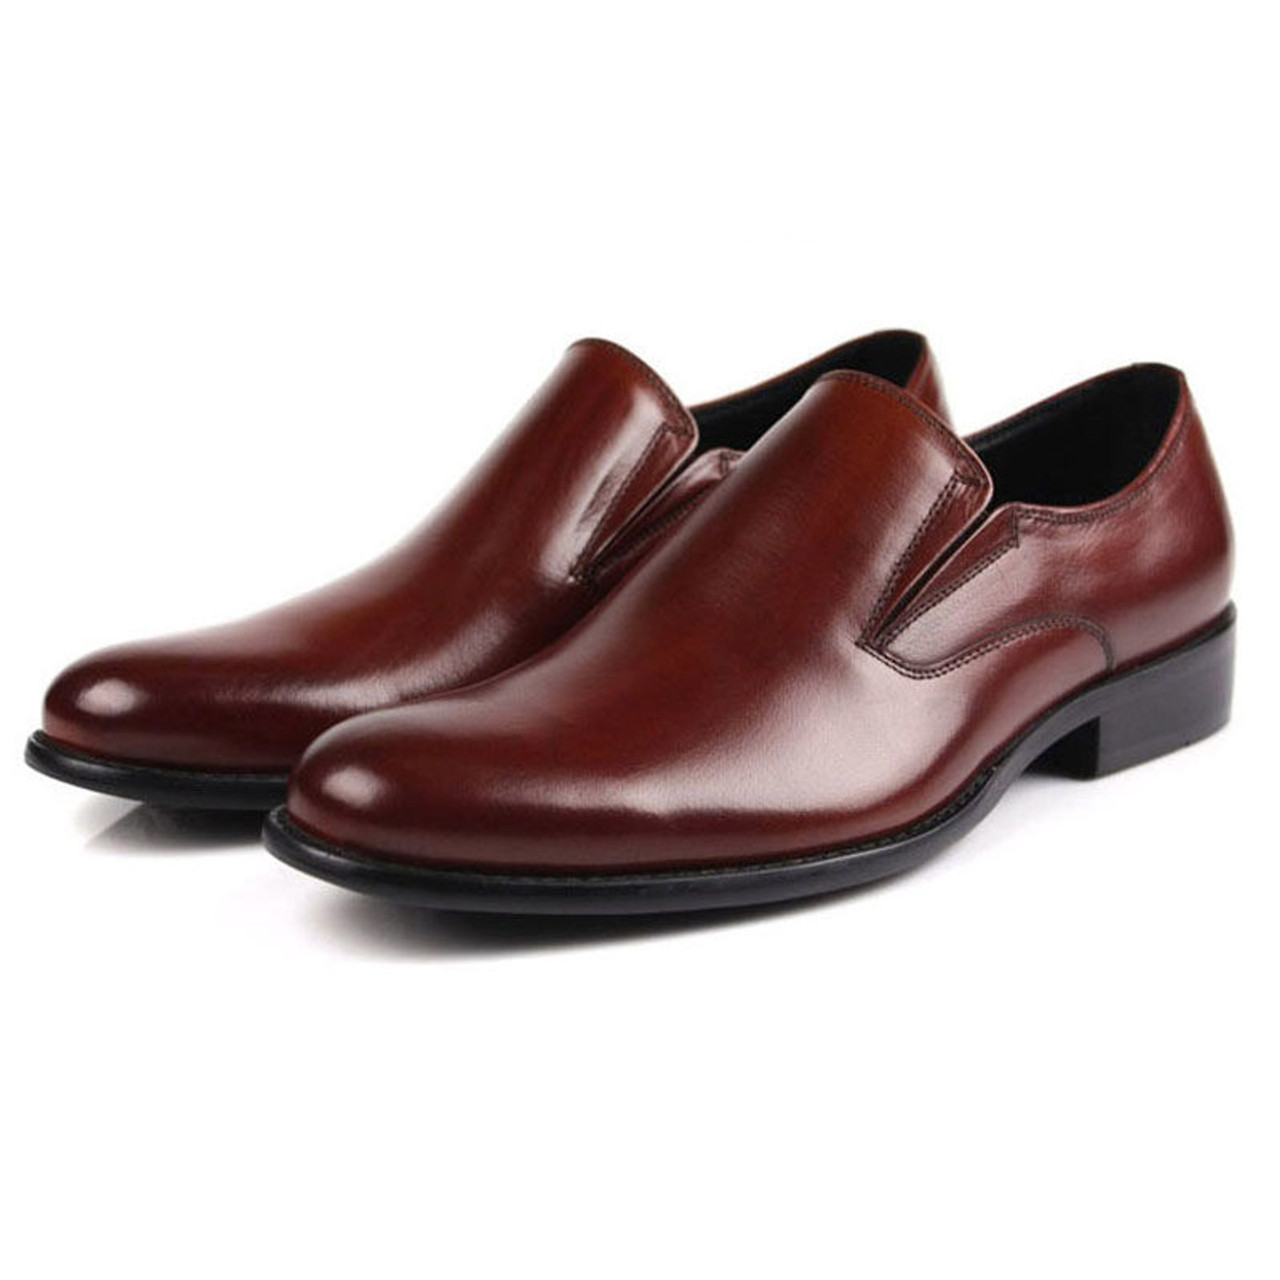 37f003218 Most Comfortable Mens Dress Shoes   Leather Loafers For Men